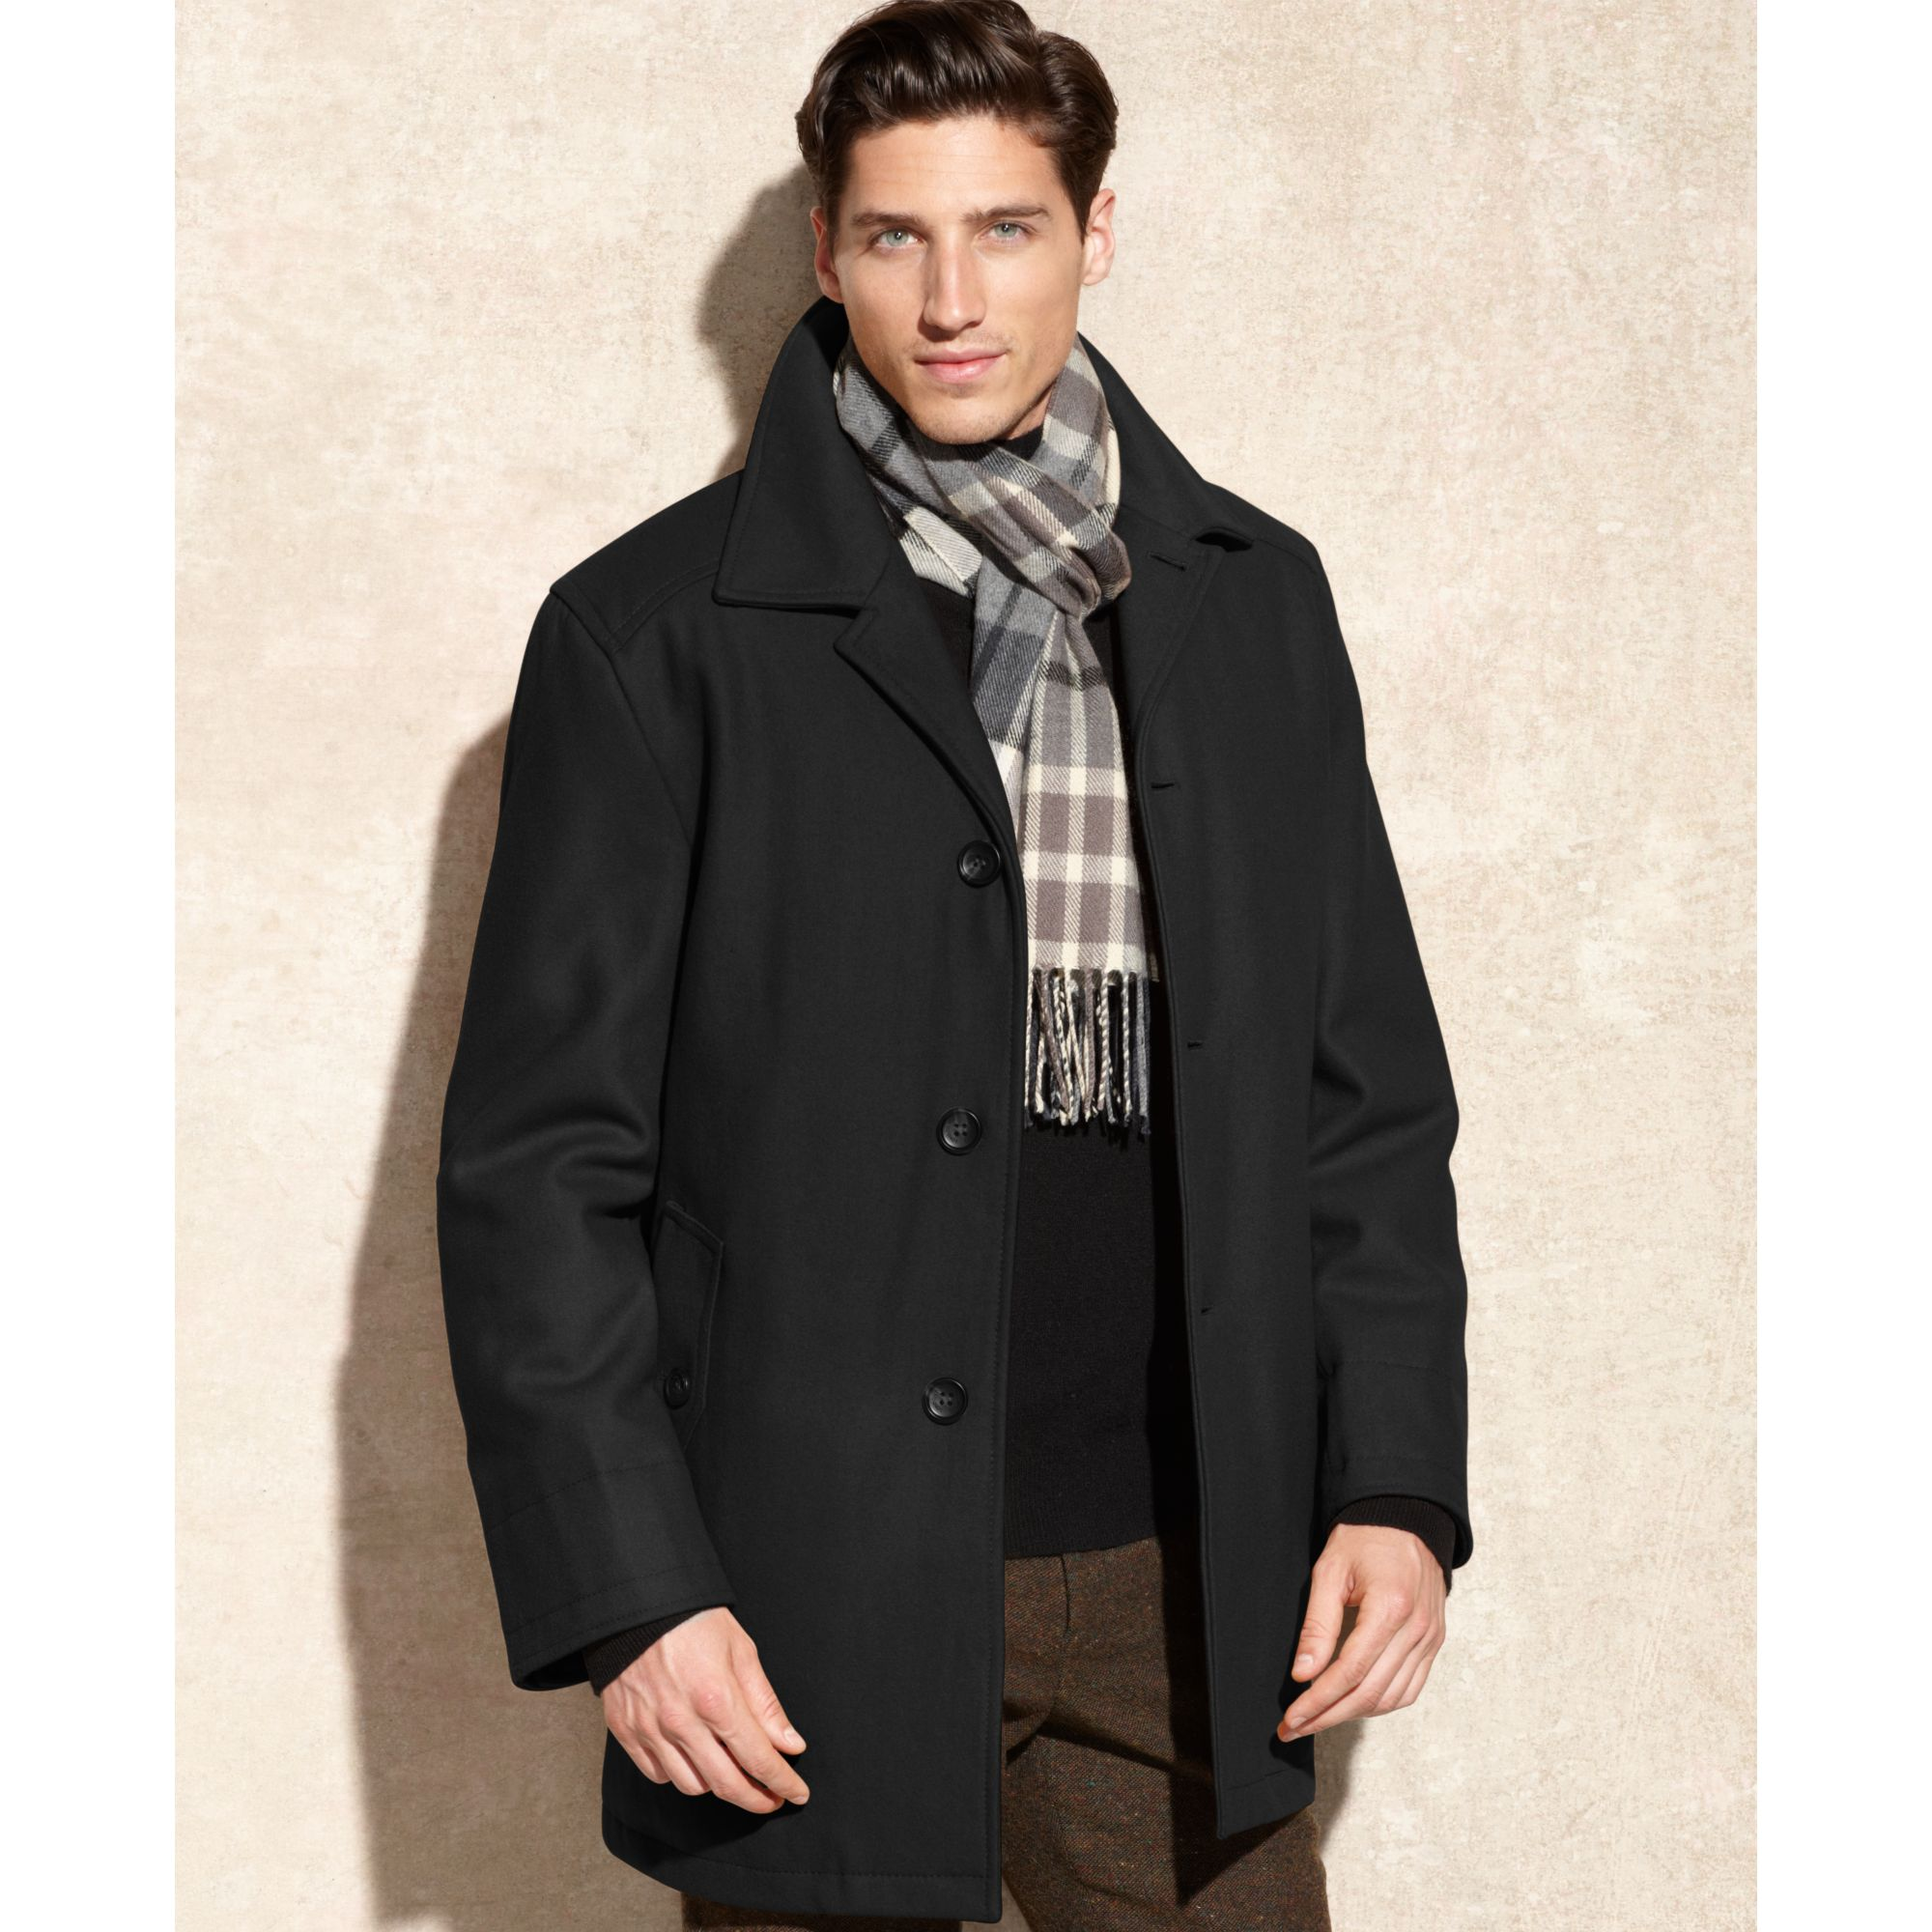 $250 - LONDON FOG Men's ALDEN Wool-blend CAR COAT w/SCARF - M ...